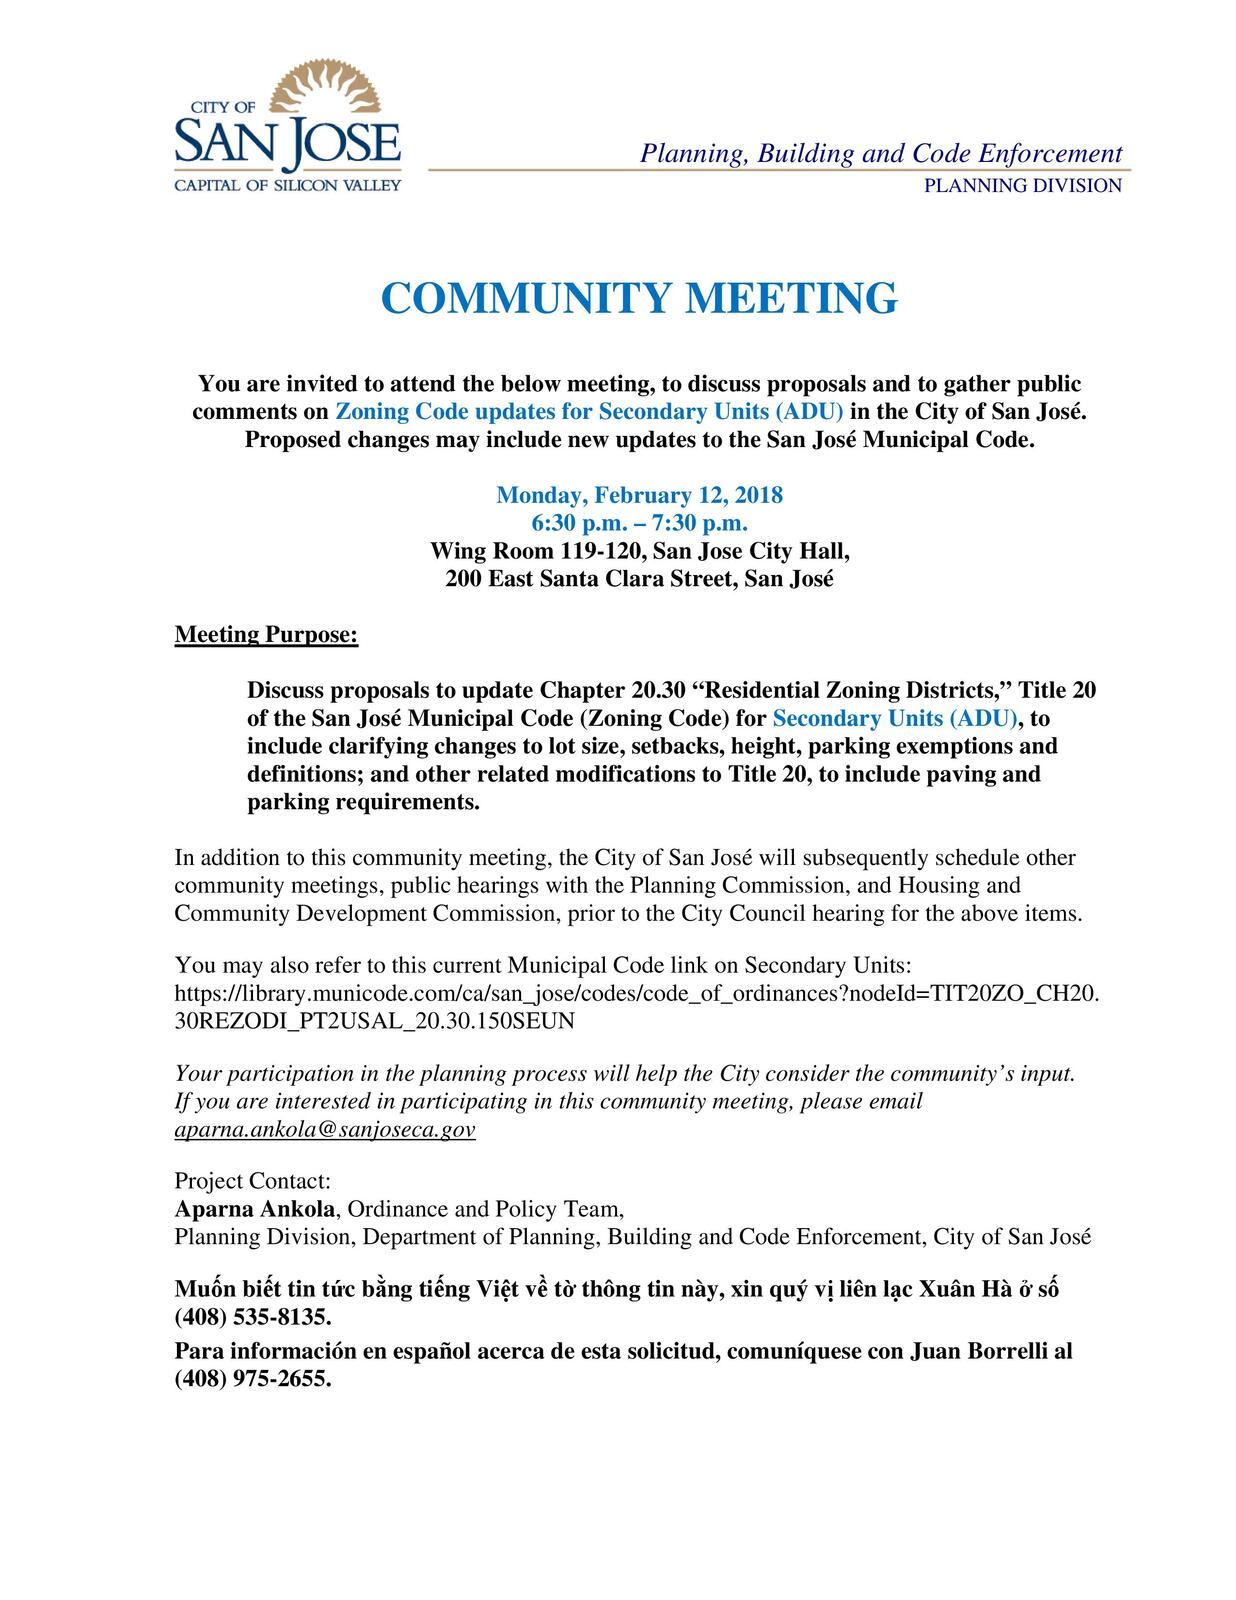 Community meeting on zoning code updates for building of secondary ...